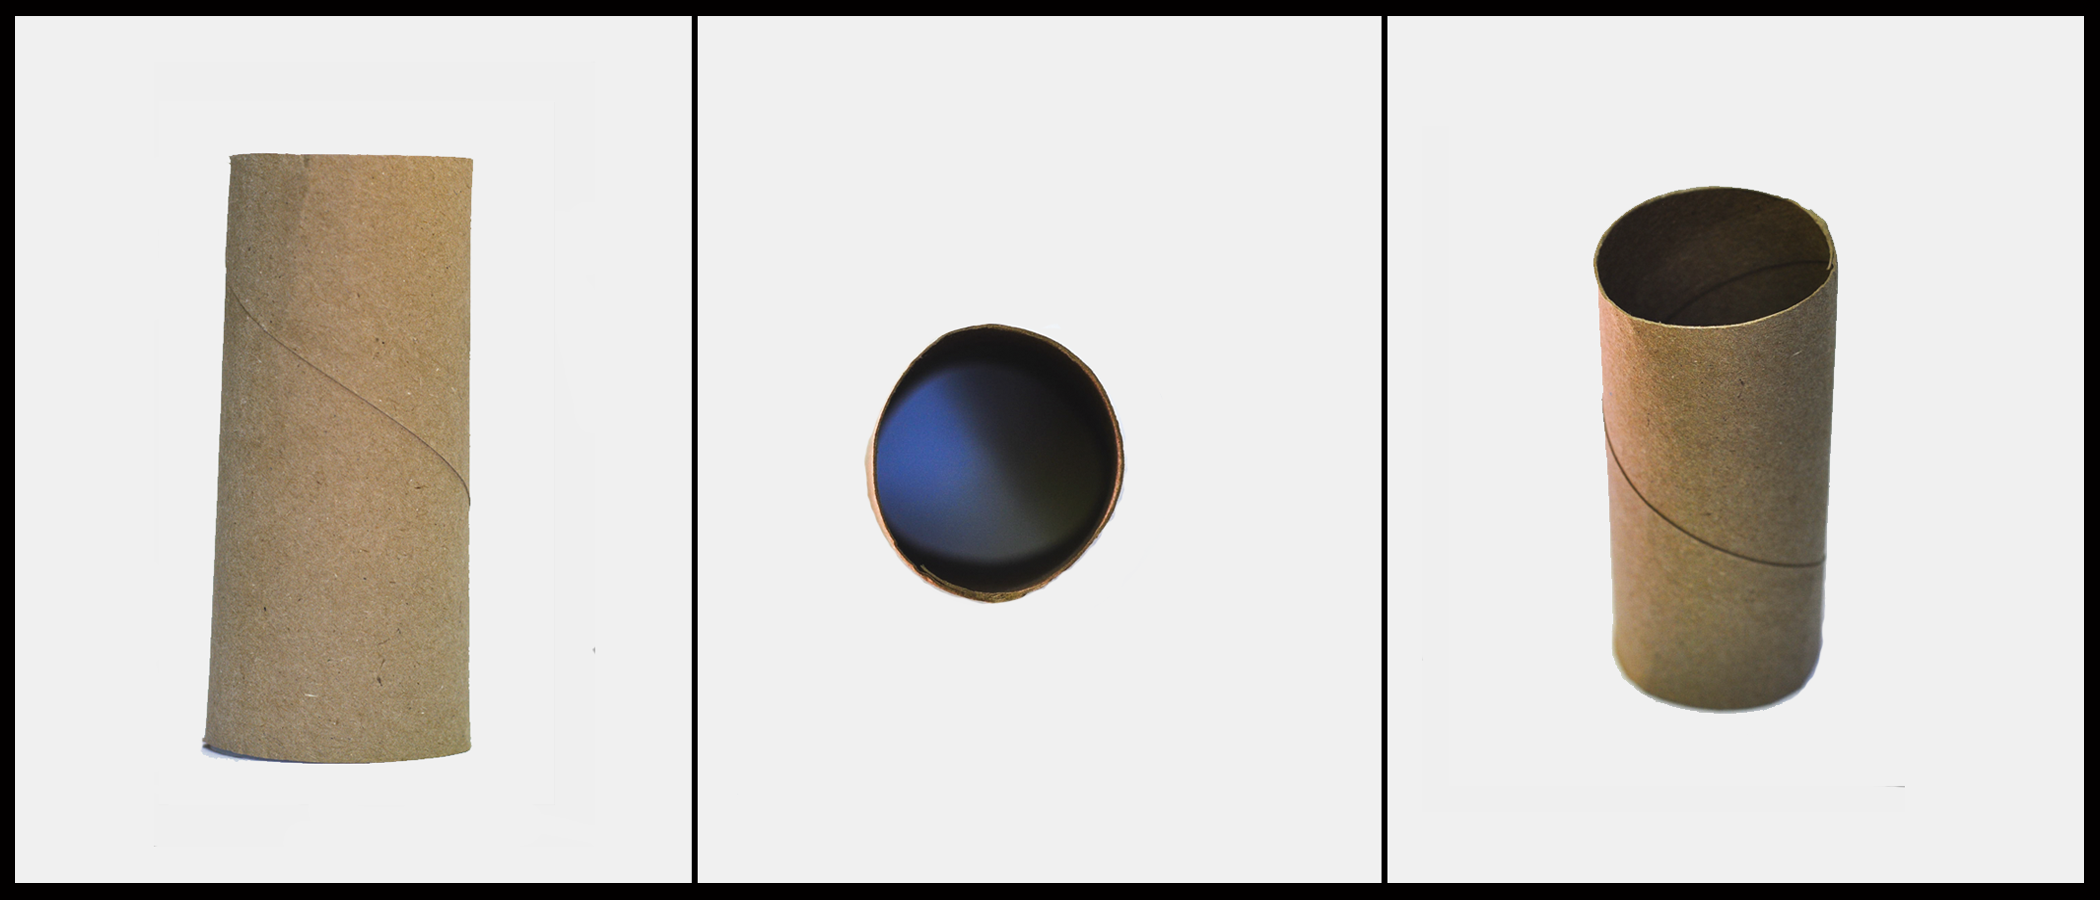 Three different views of a circular shaped toilet paper tube. The first view is of the vertical height of the tube. The second view is of the circular base of the tube. The third view is of both the base and the height of the tube.